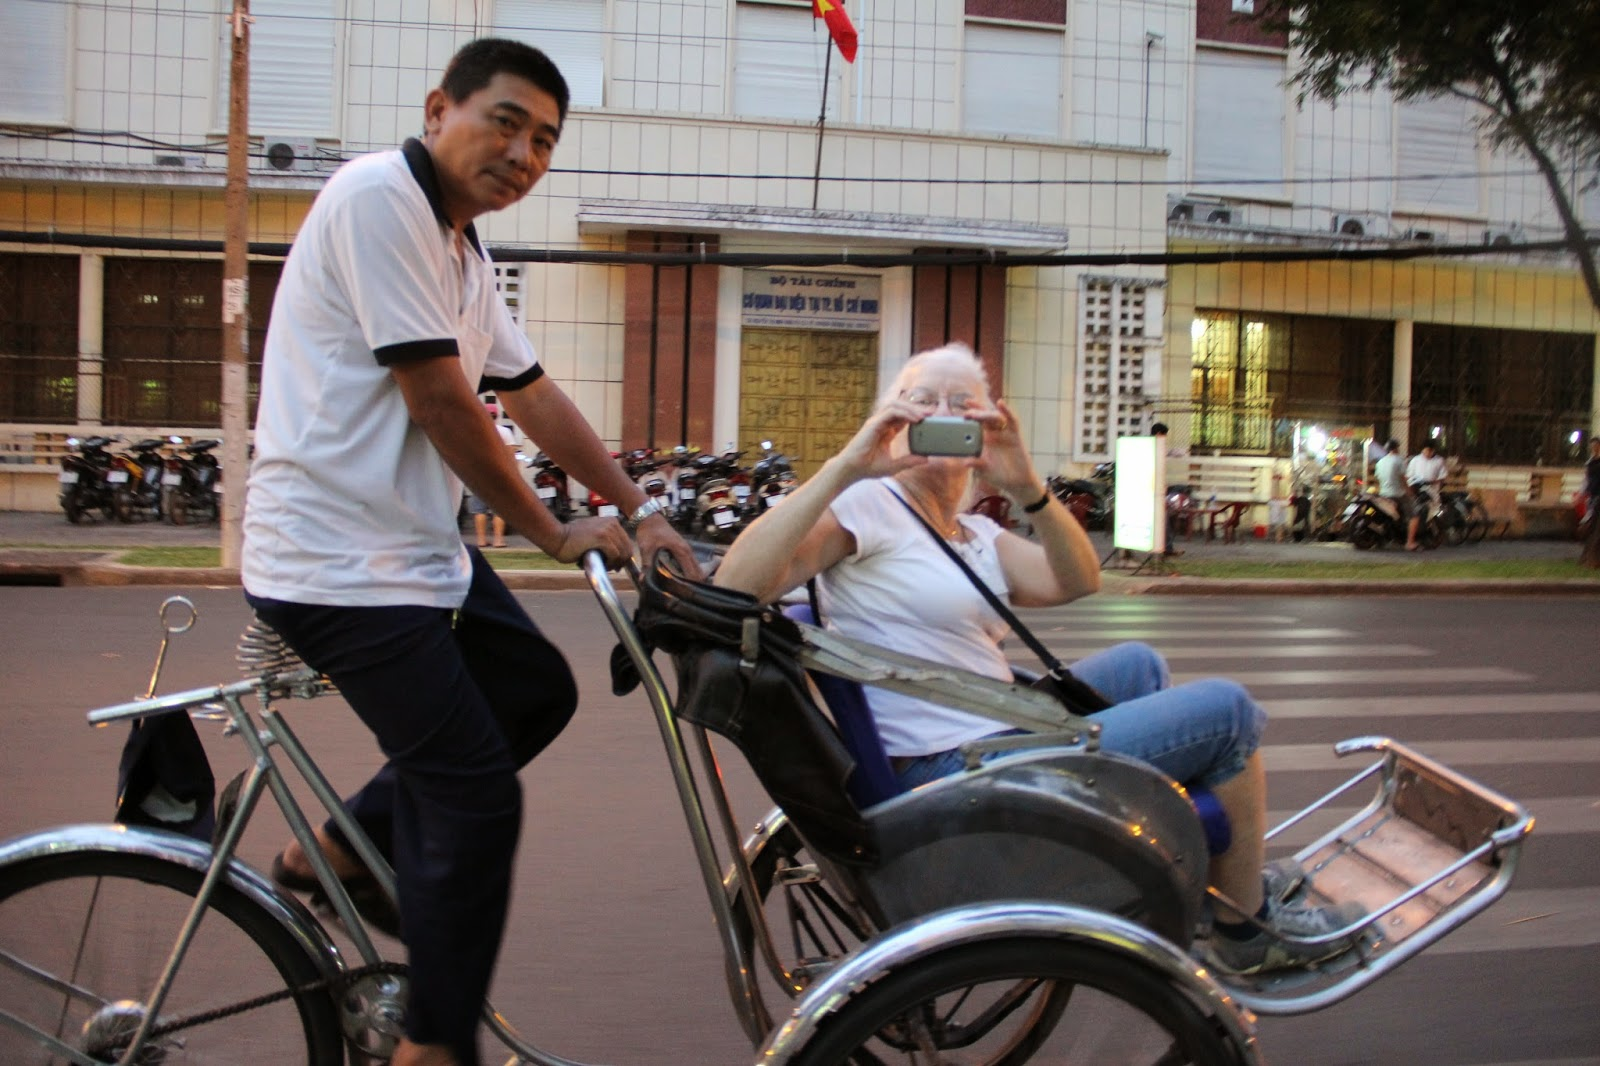 Taking a picture while riding on a cyclo, or pedicab in HCMC.